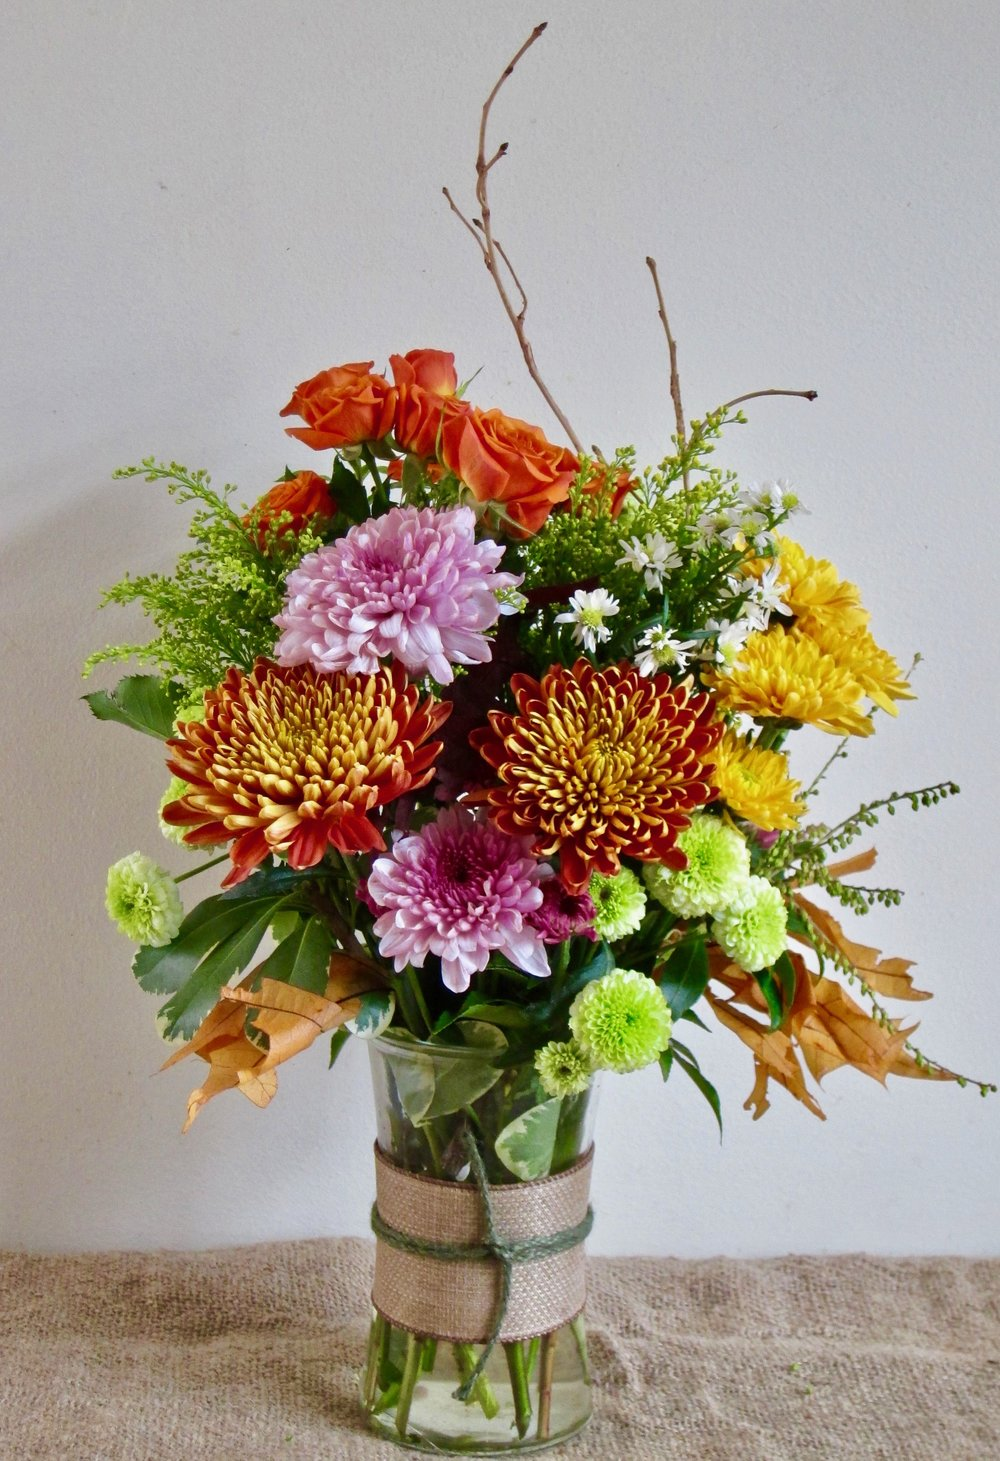 BURLAP WRAP   Copper, bronze and purple flowers with fall foliages in a burlap wrapped vase, $45.